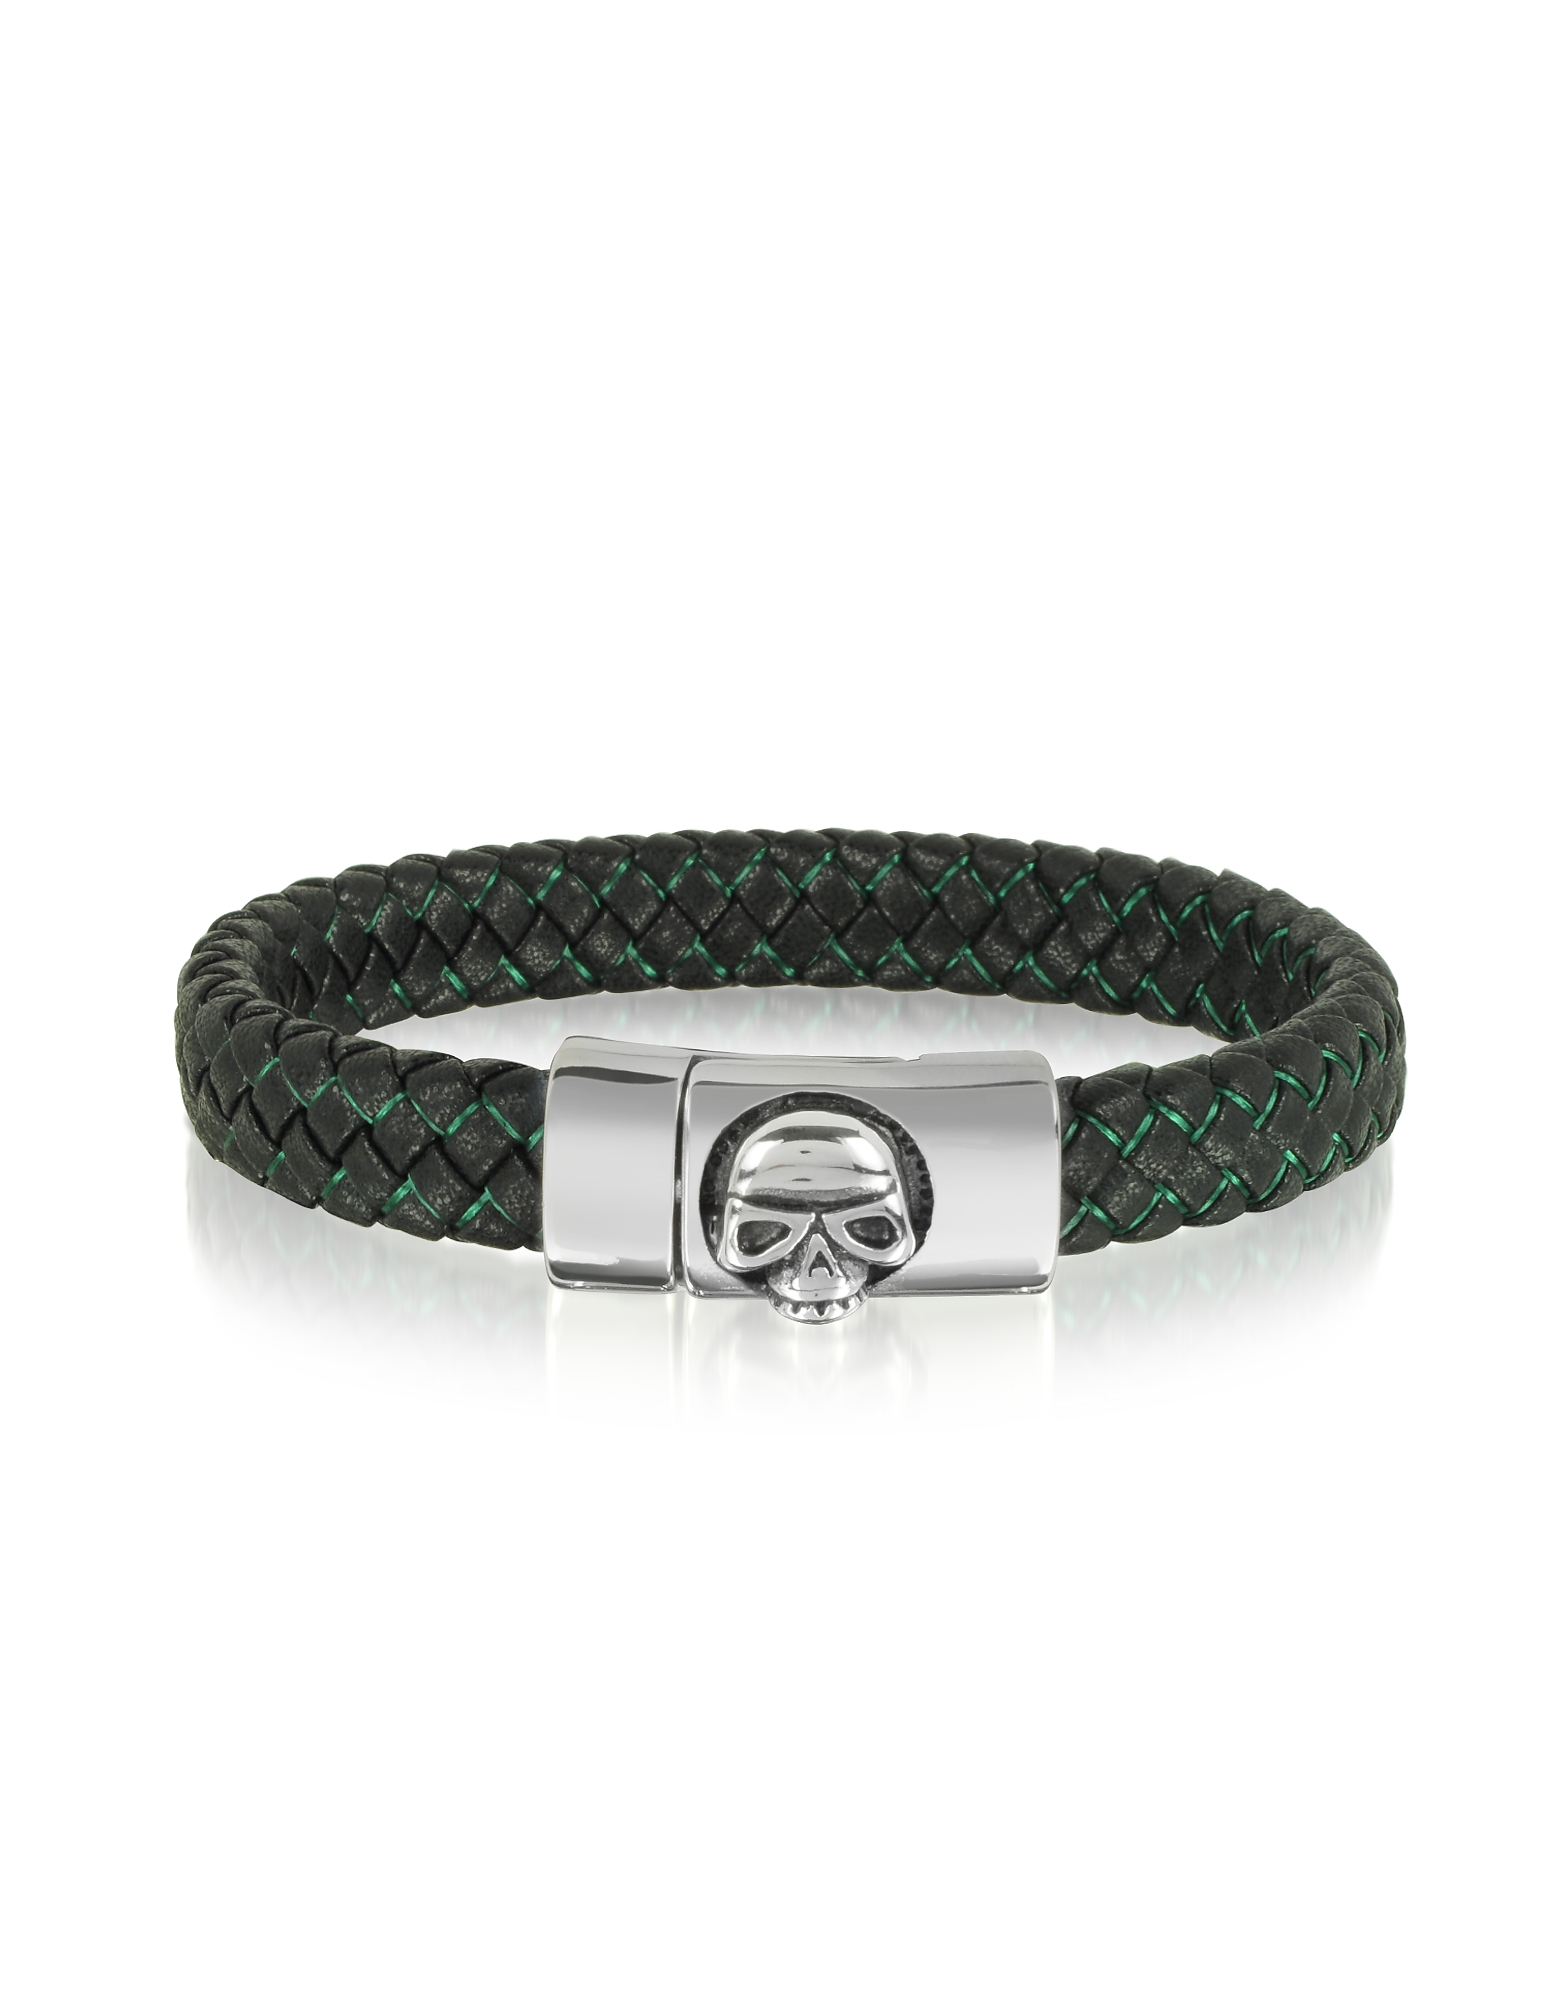 Image of Blackbourne Designer Men's Bracelets, Black Woven Leather Men's bracelet w/Stainless Steel Skull